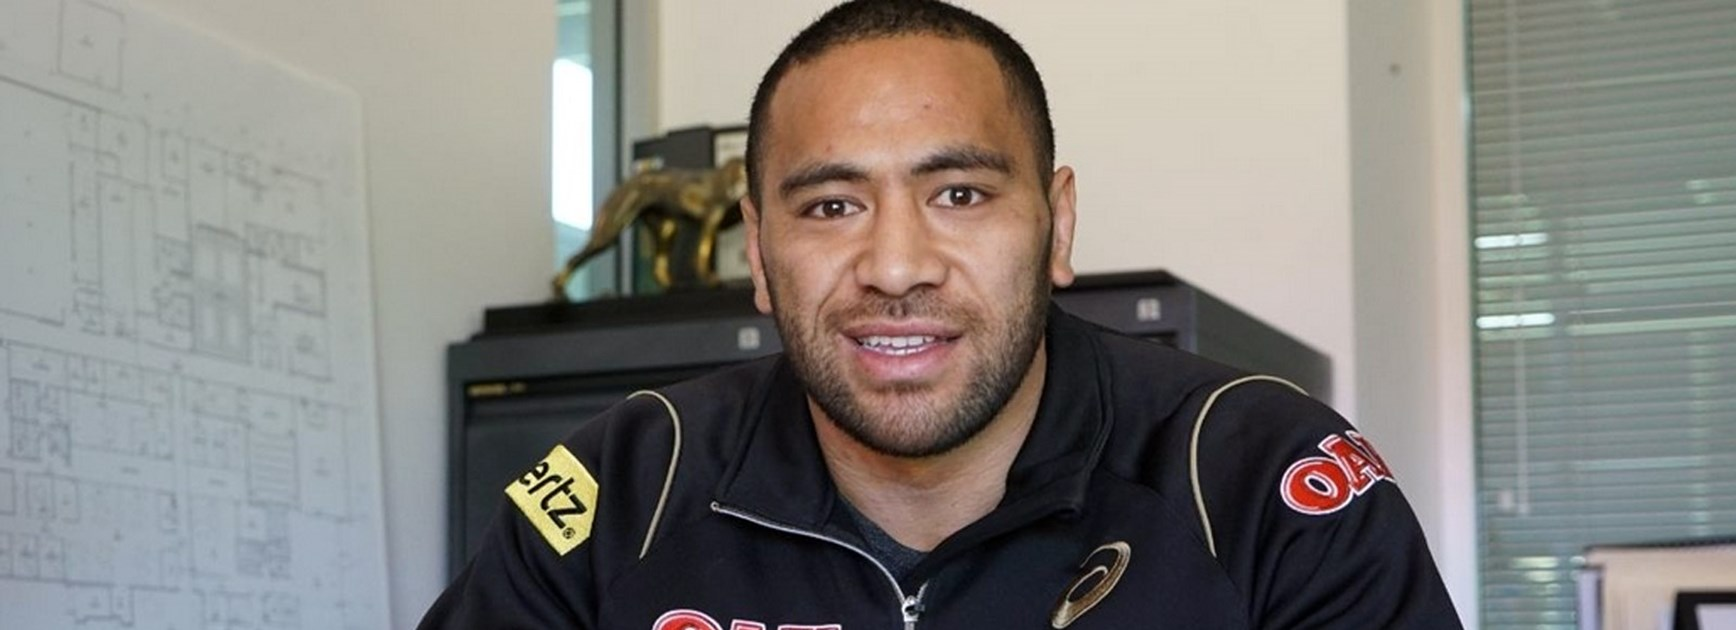 Penrith have secured the services of former Roosters and Warriors forward Suaia Matagi.